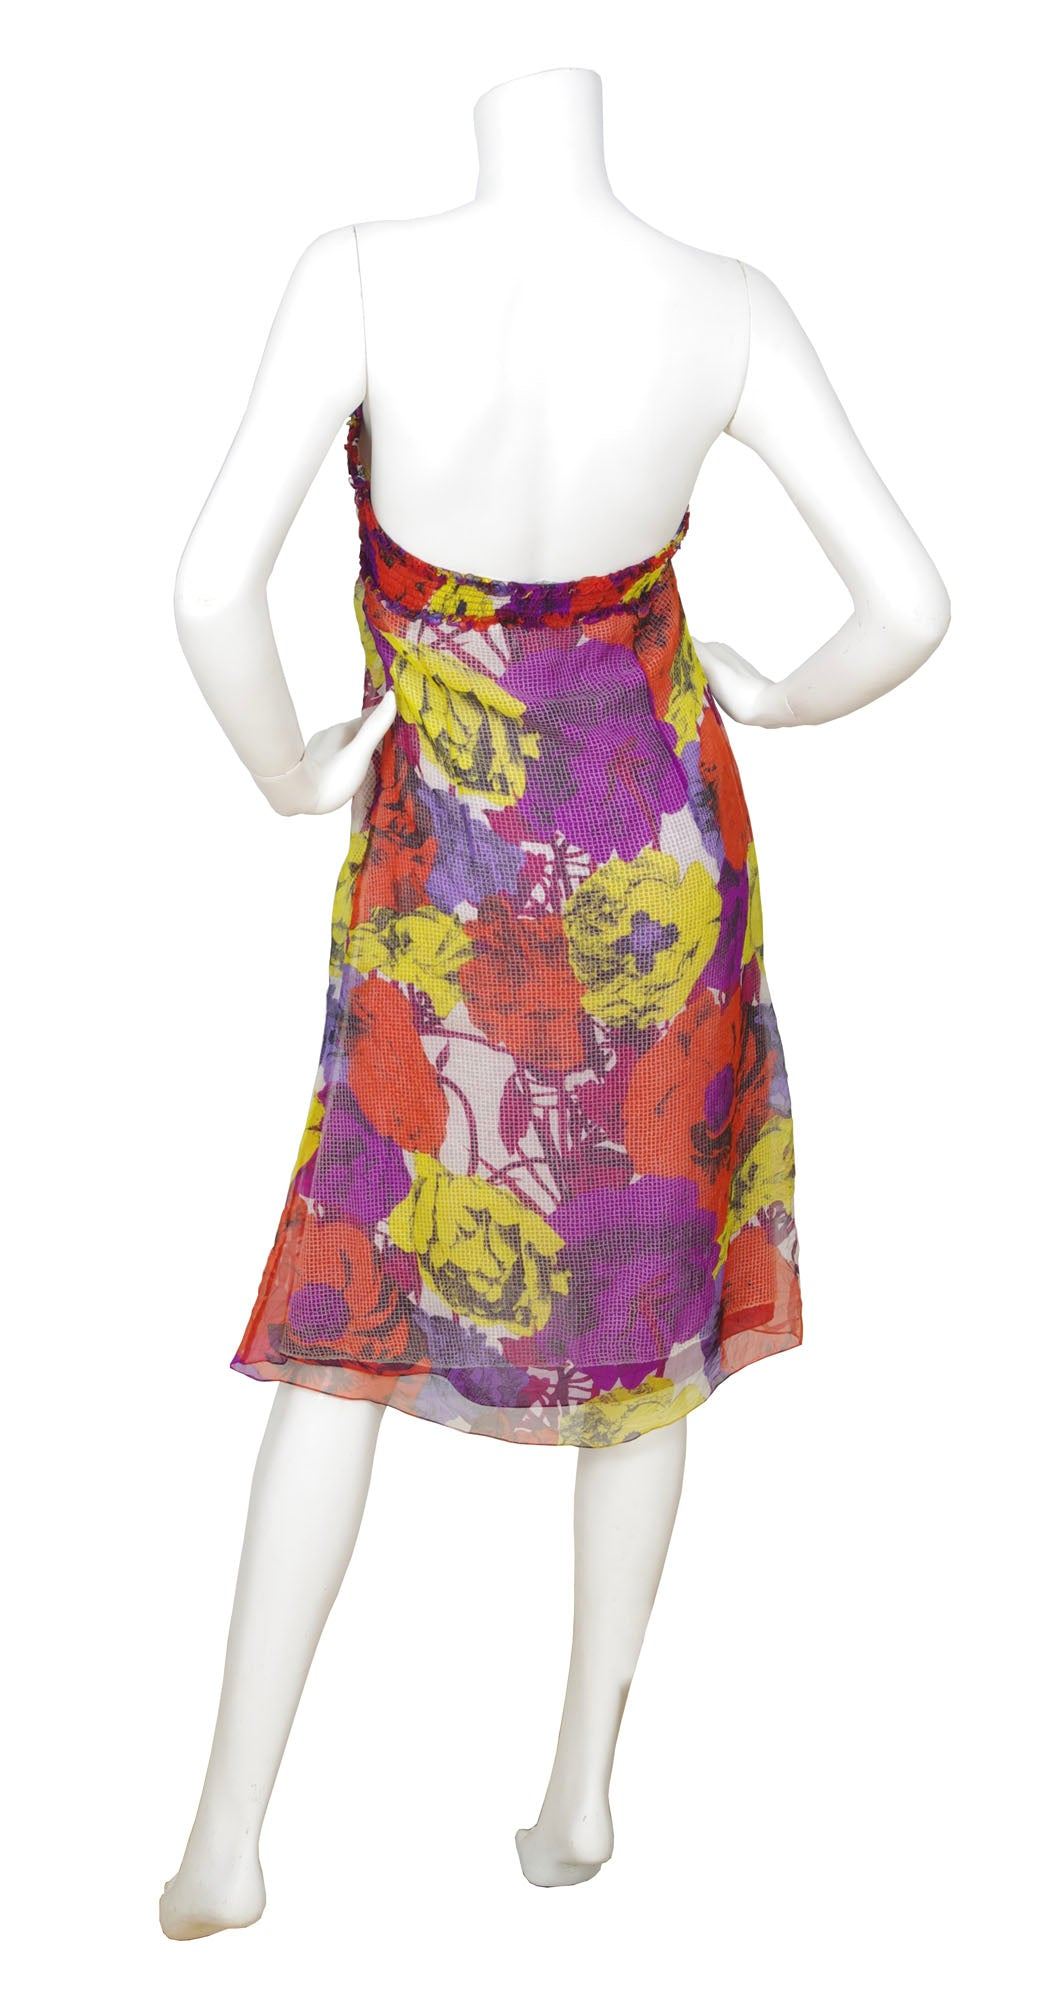 2002 S/S Documented Runway Floral Pop Art Chiffon Tube Dress